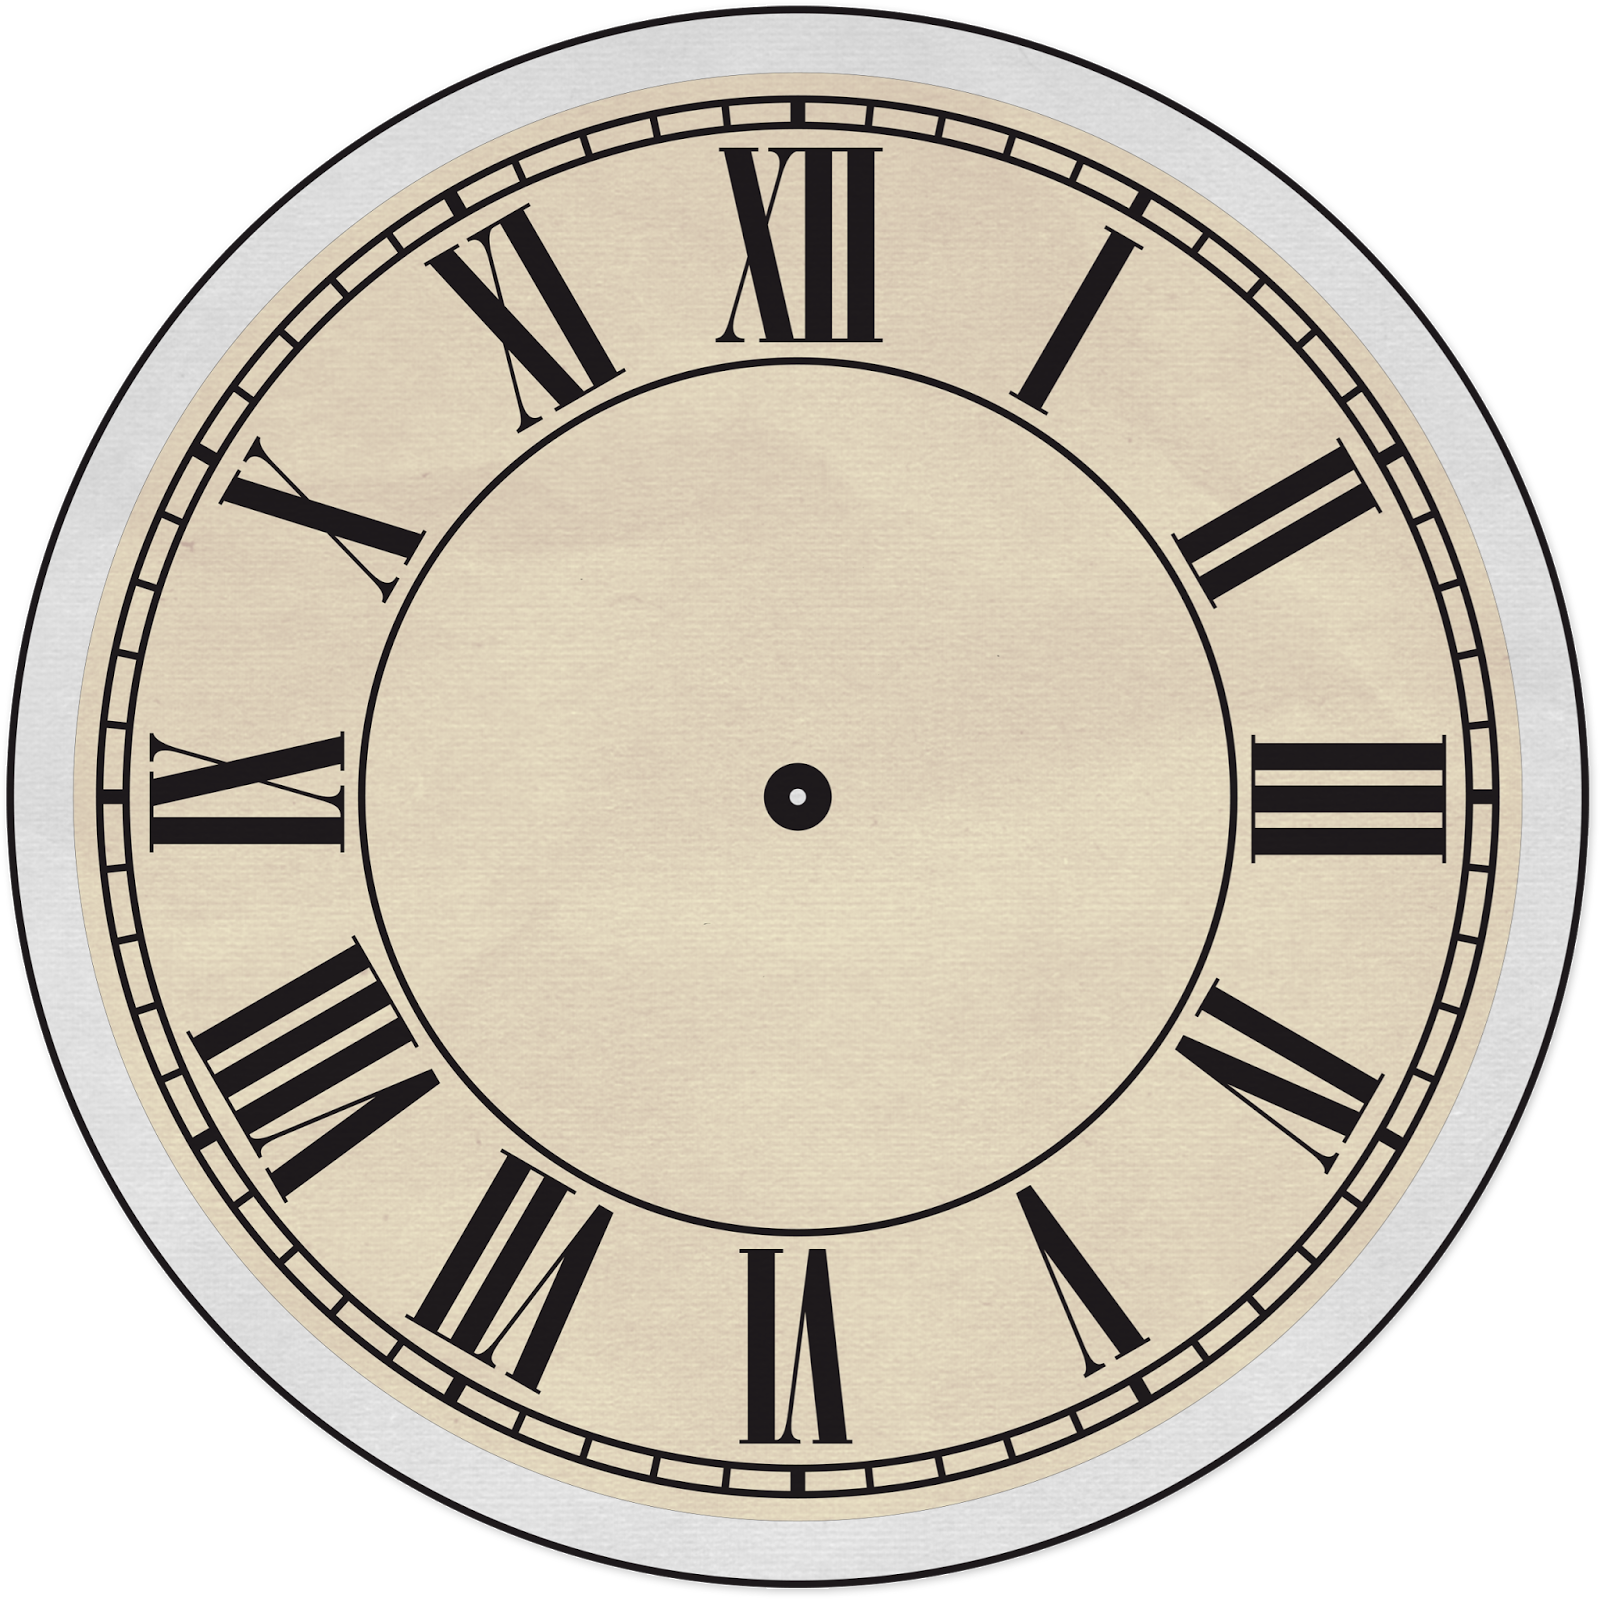 Download HD Wall Clocks, Silhouettes, Searching, Silhouette - Reloj Sin  Manecillas Letra Transparent PNG Image - NicePNG.com